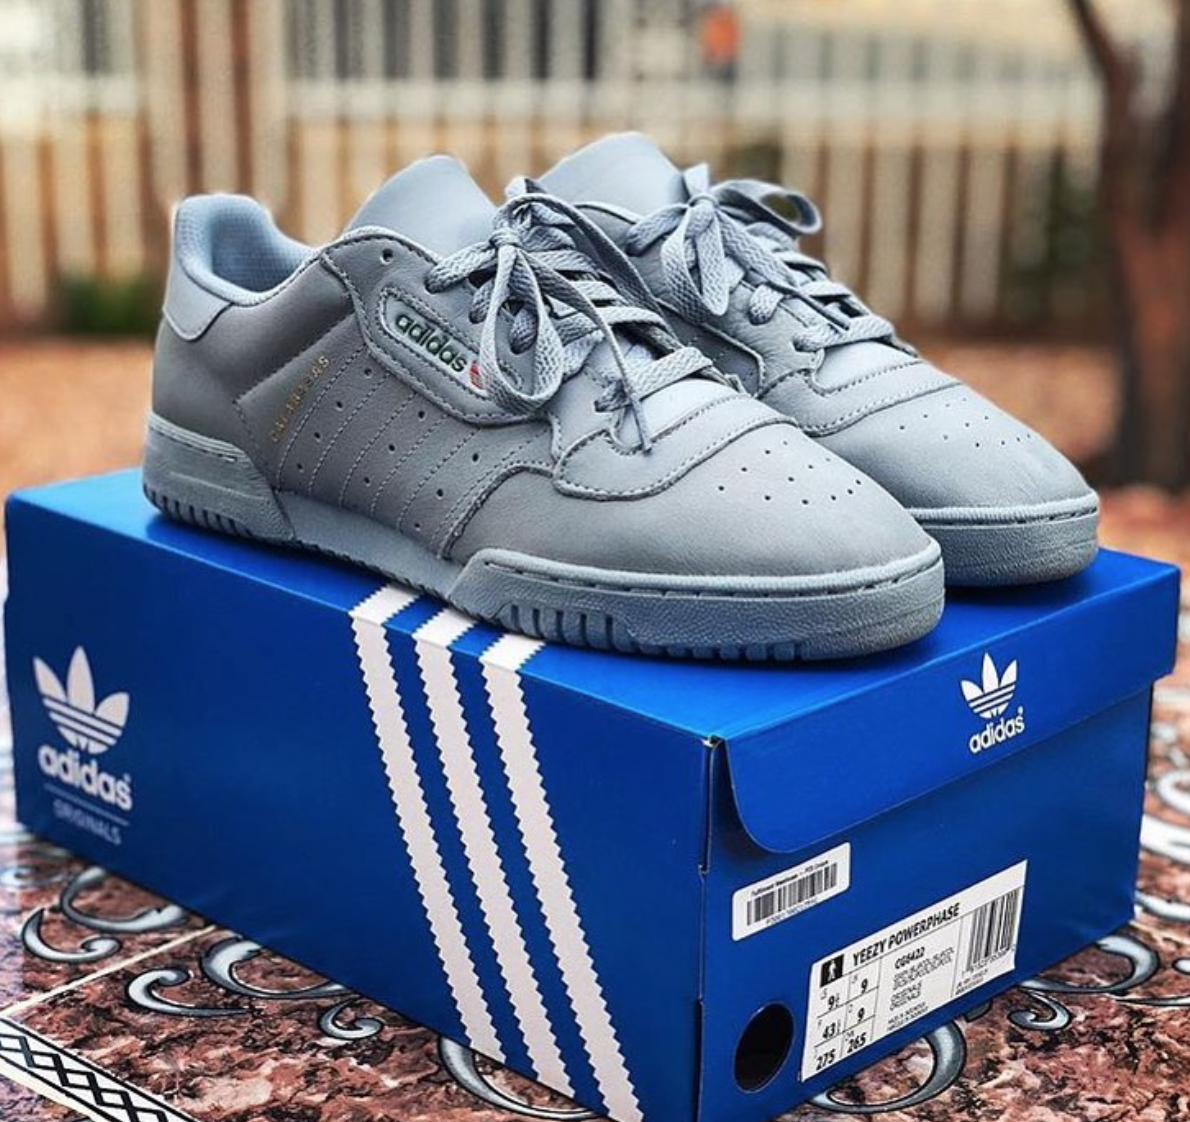 4e20e84776a Watch out for fake Yeezy Powerphases online, get a 27 point step-by ...